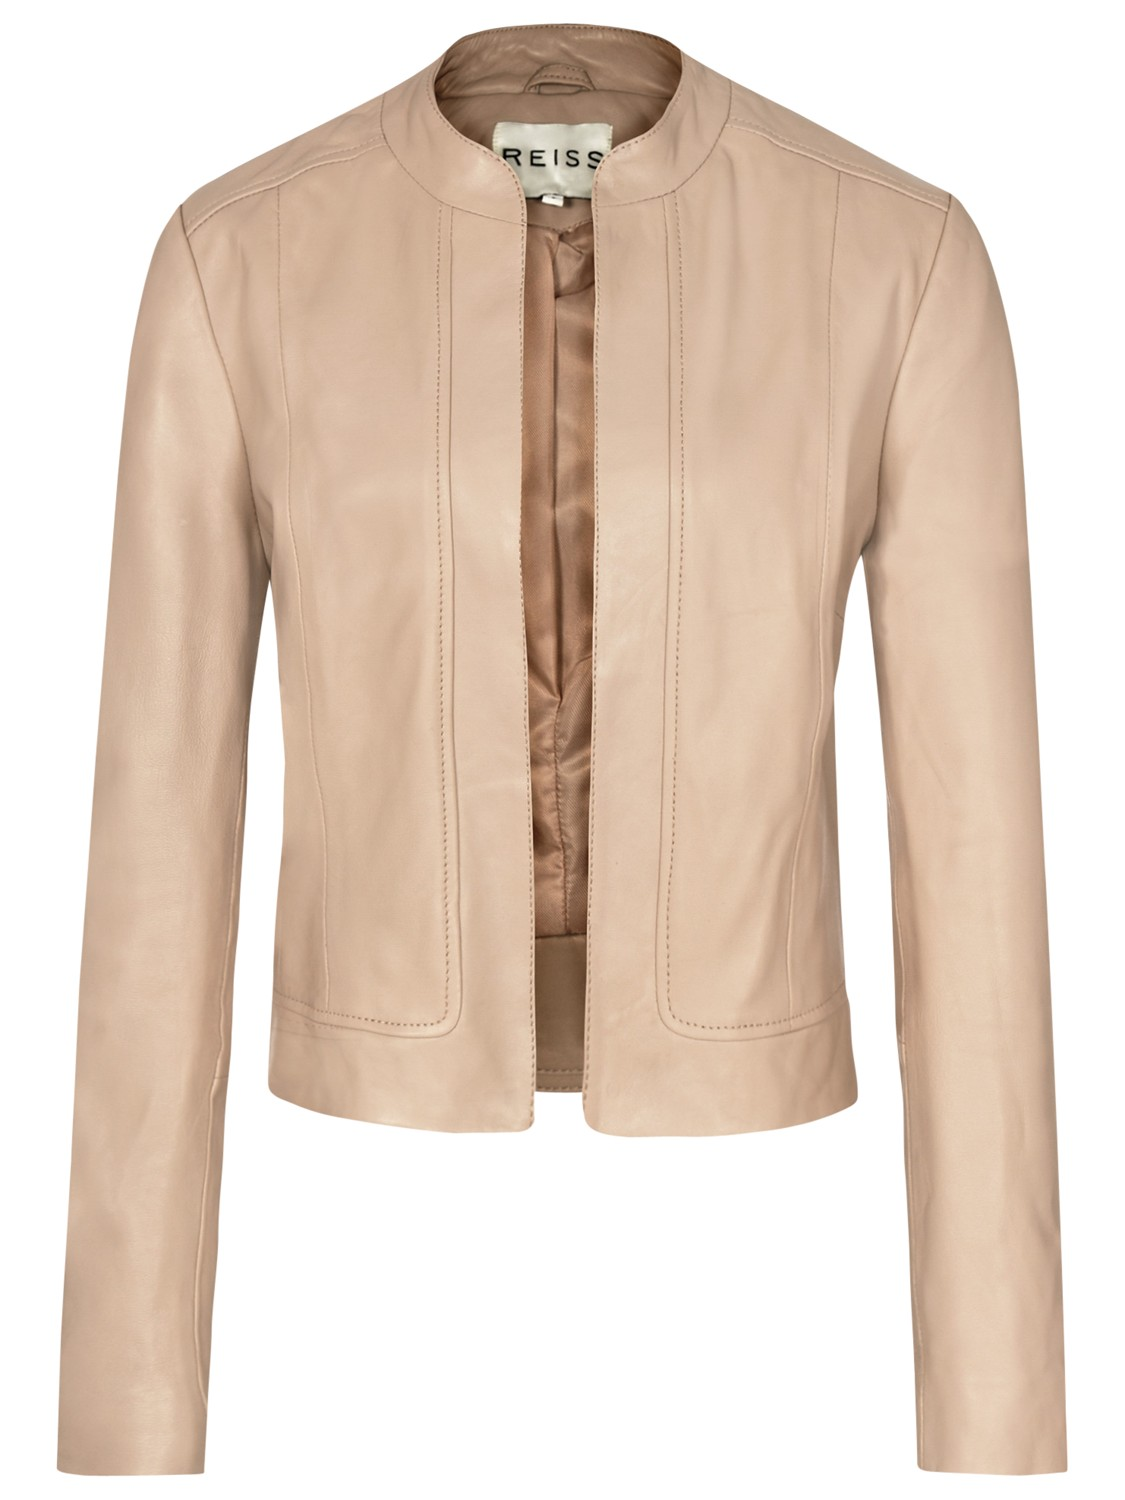 Reiss Bryony Cropped Leather Jacket Blush In Pink Blush